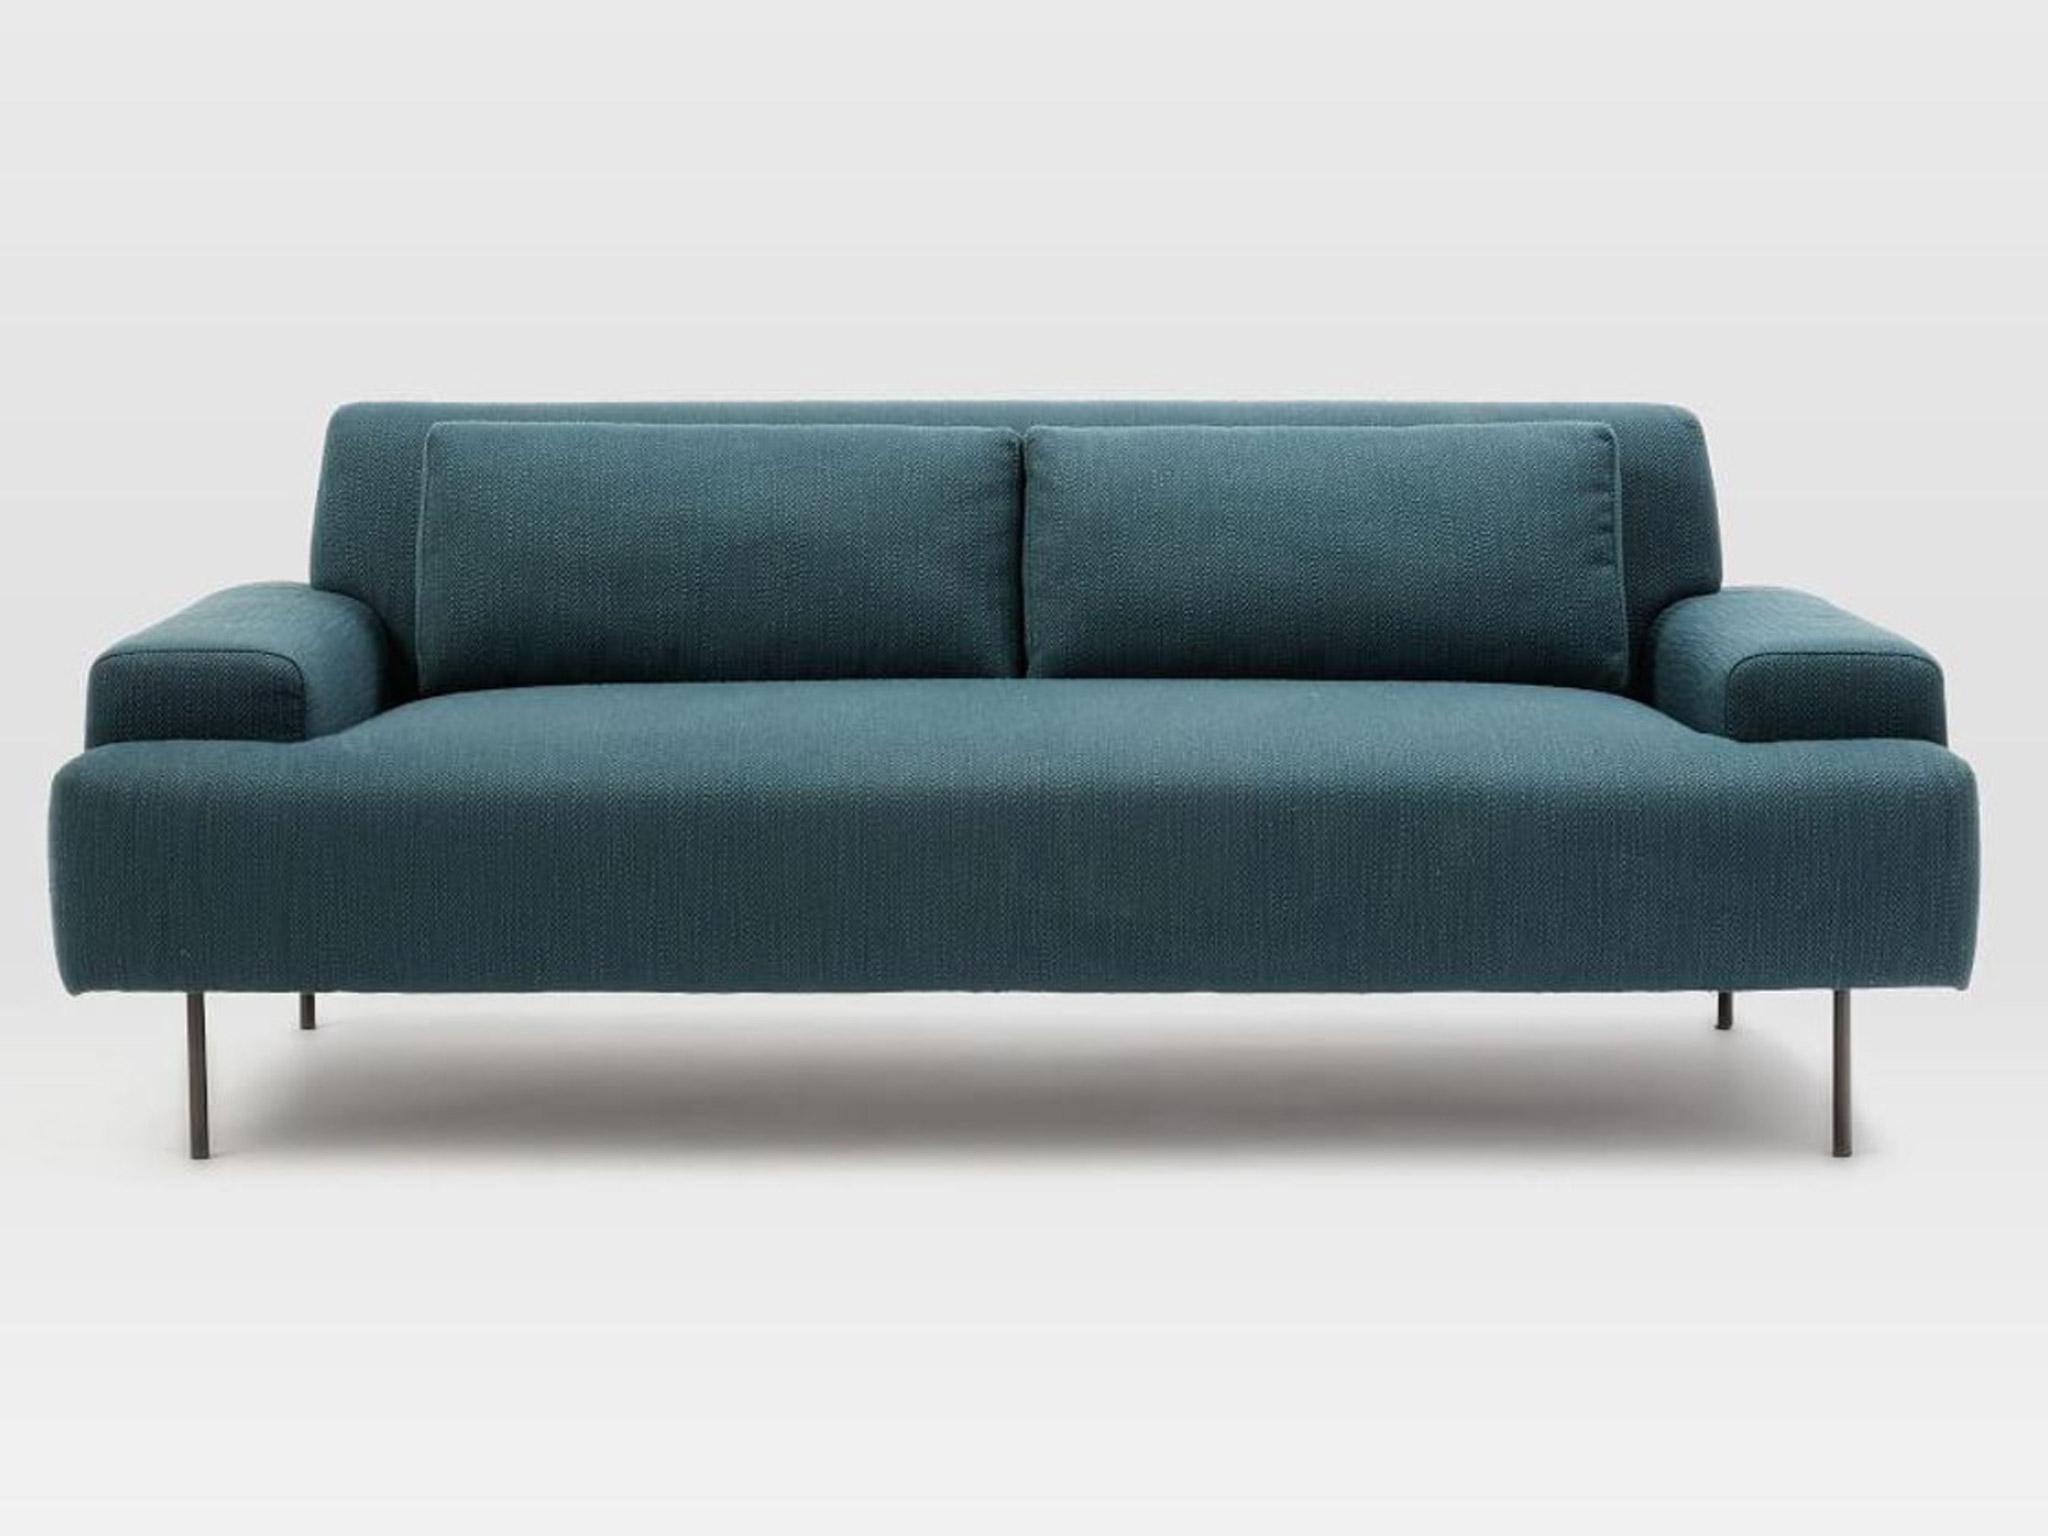 Charmant The Deep And Low Dimensions Of The Beckham Sofa Give It A Laid Back Style.  At 194cm Wide It Seats Two, And Comes In A Textured Teal Fabric.